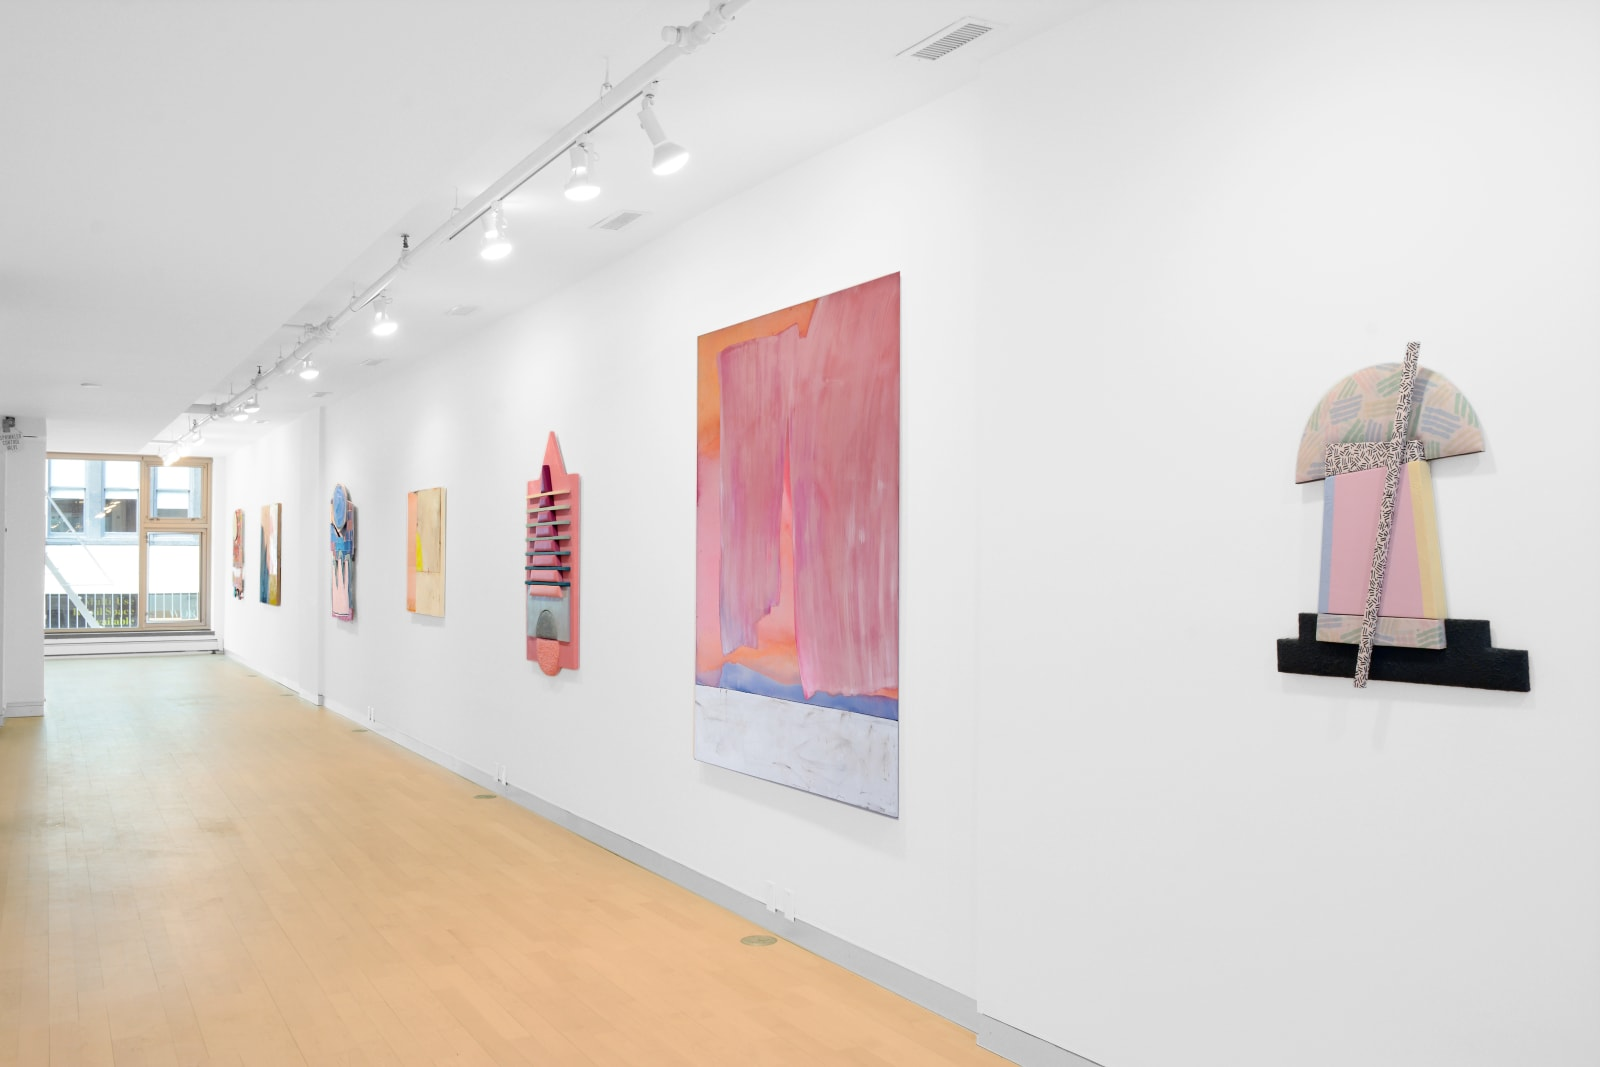 Installation view: Breaking the Frame